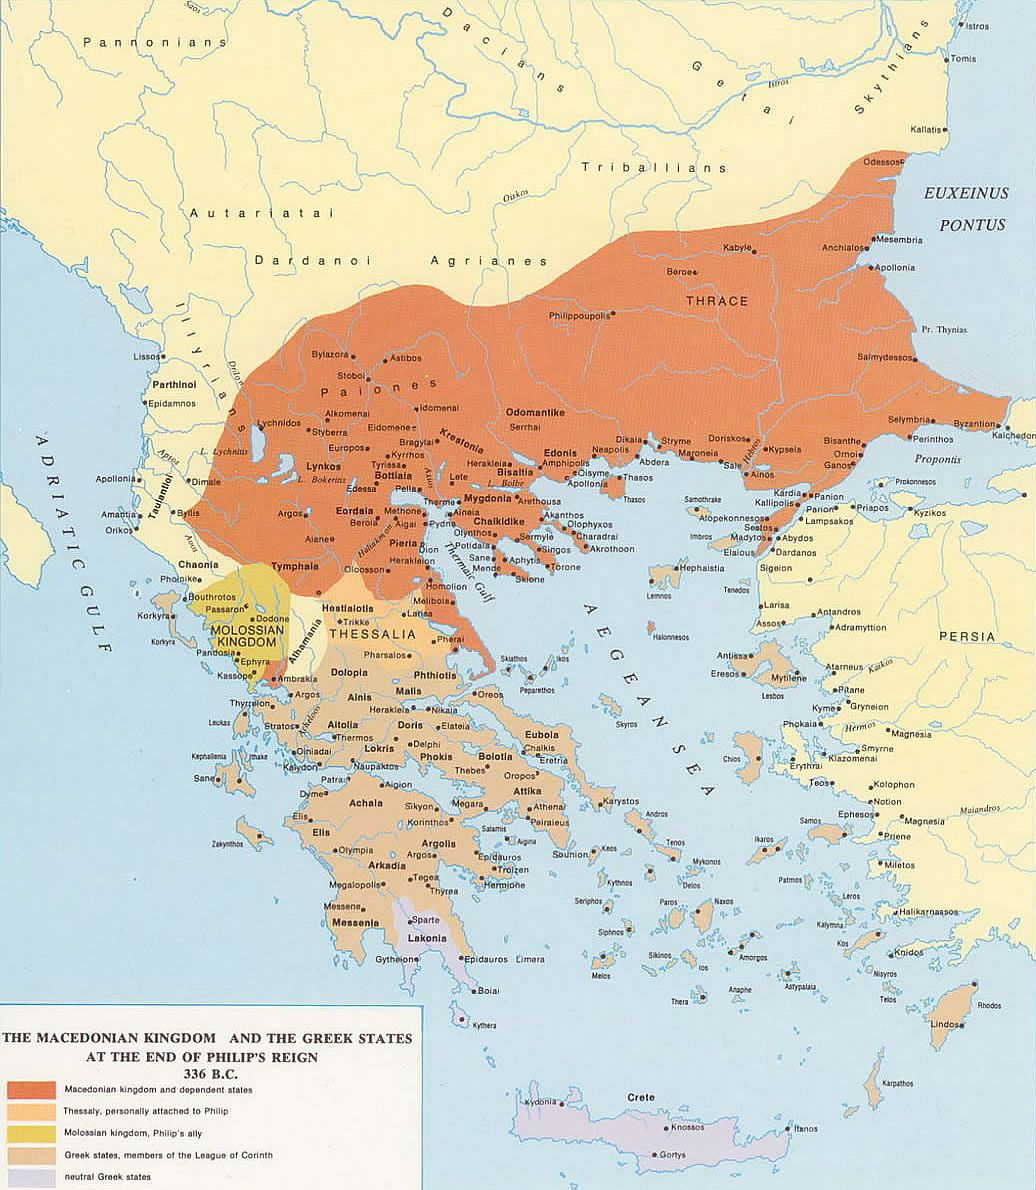 ancient macedonian culture - Google Search | journeys ...